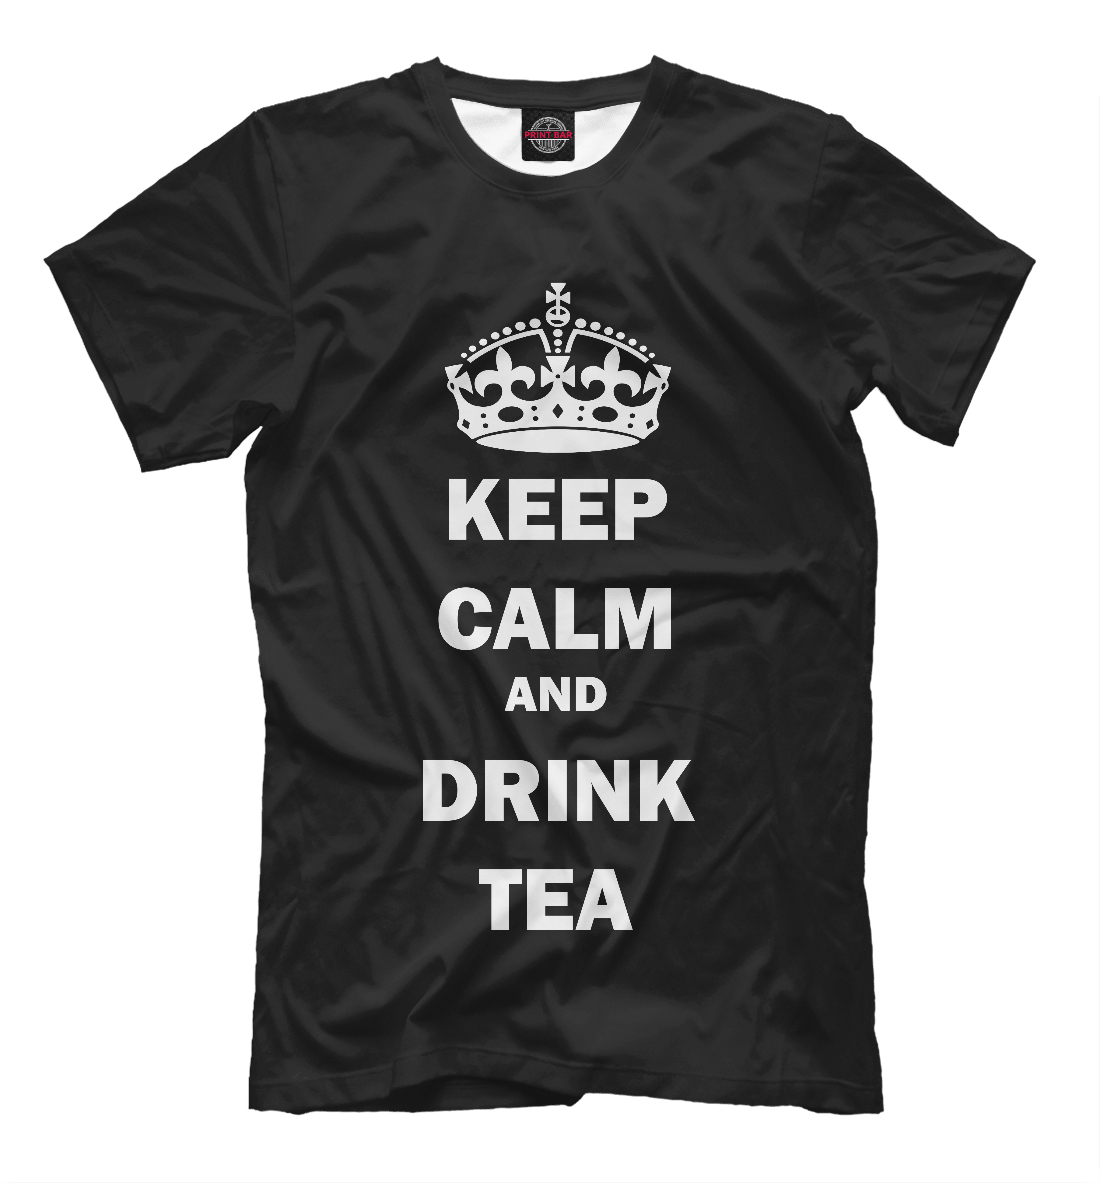 Keep kalm and drink tea